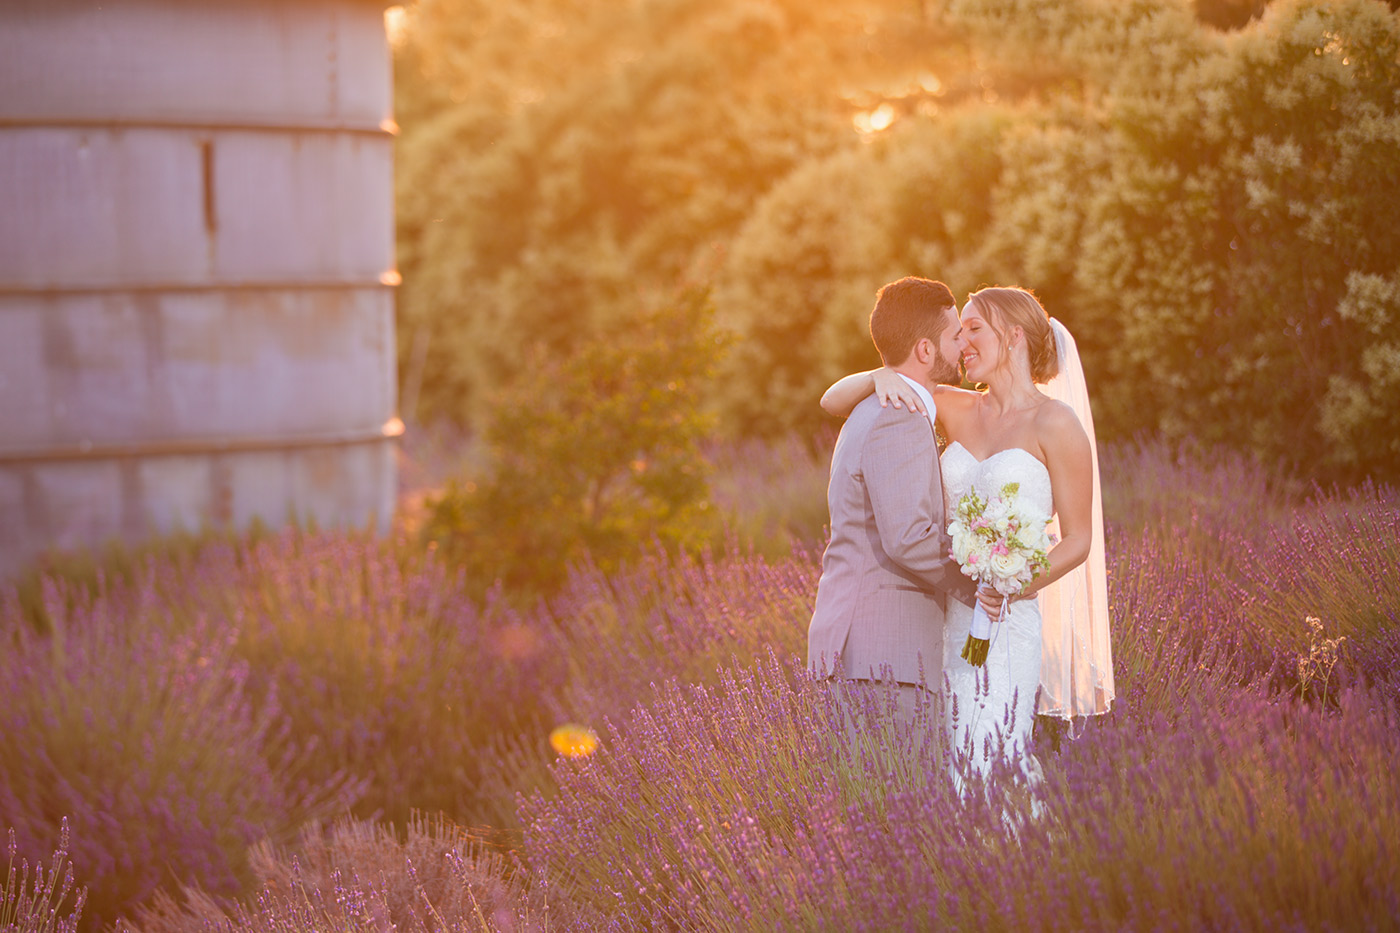 Lavender farm qld wedding